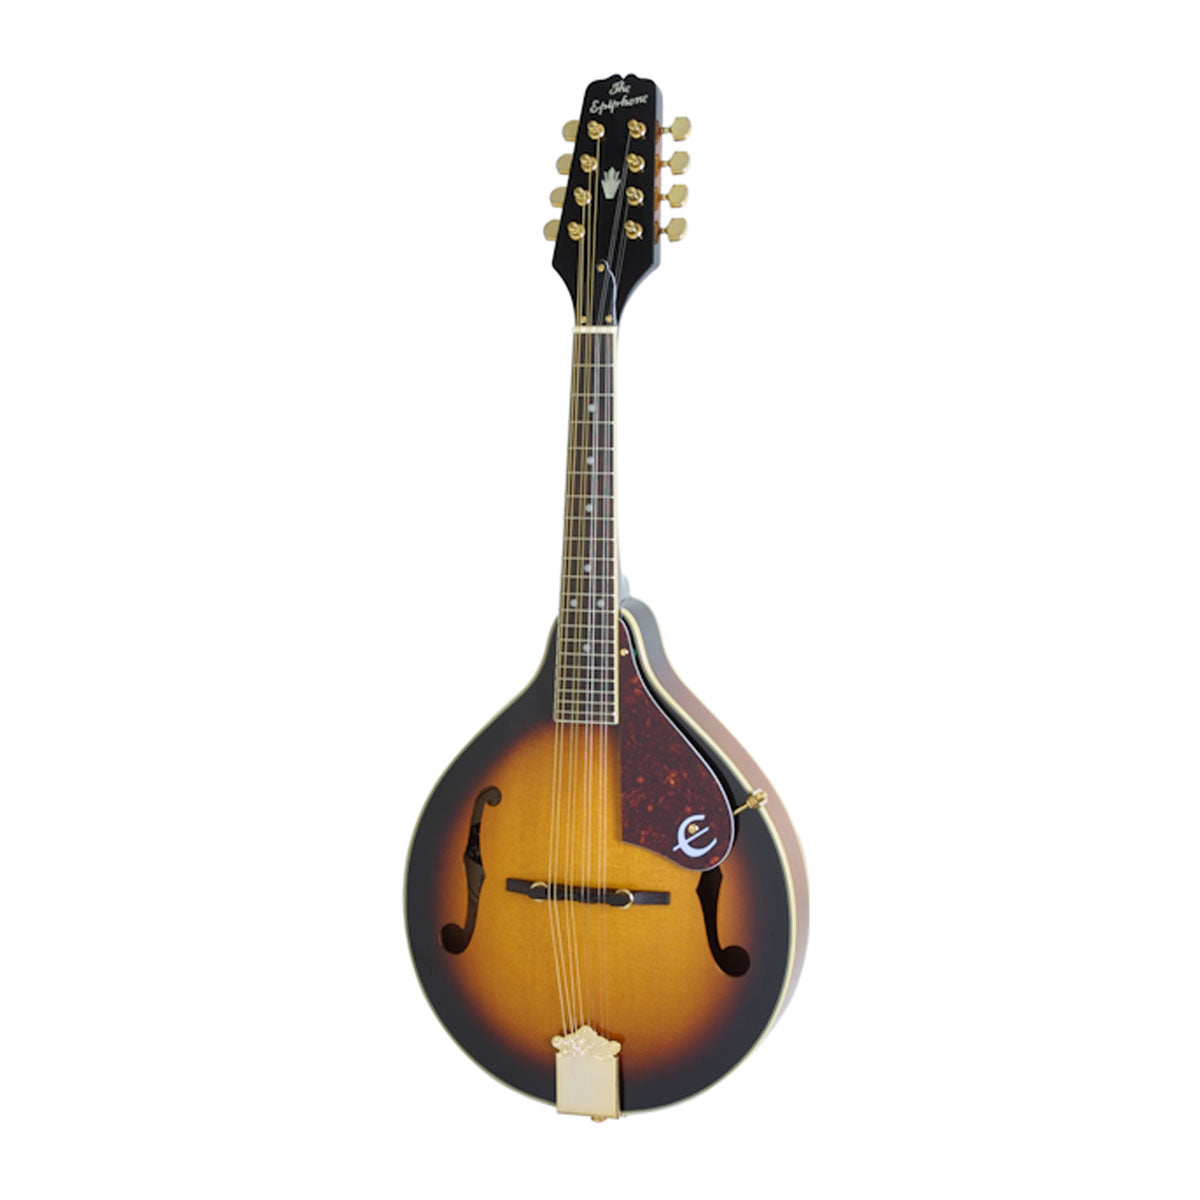 Epiphone MM-30S Mandolin A-Style Antique Sunburst - EF30ASGH1